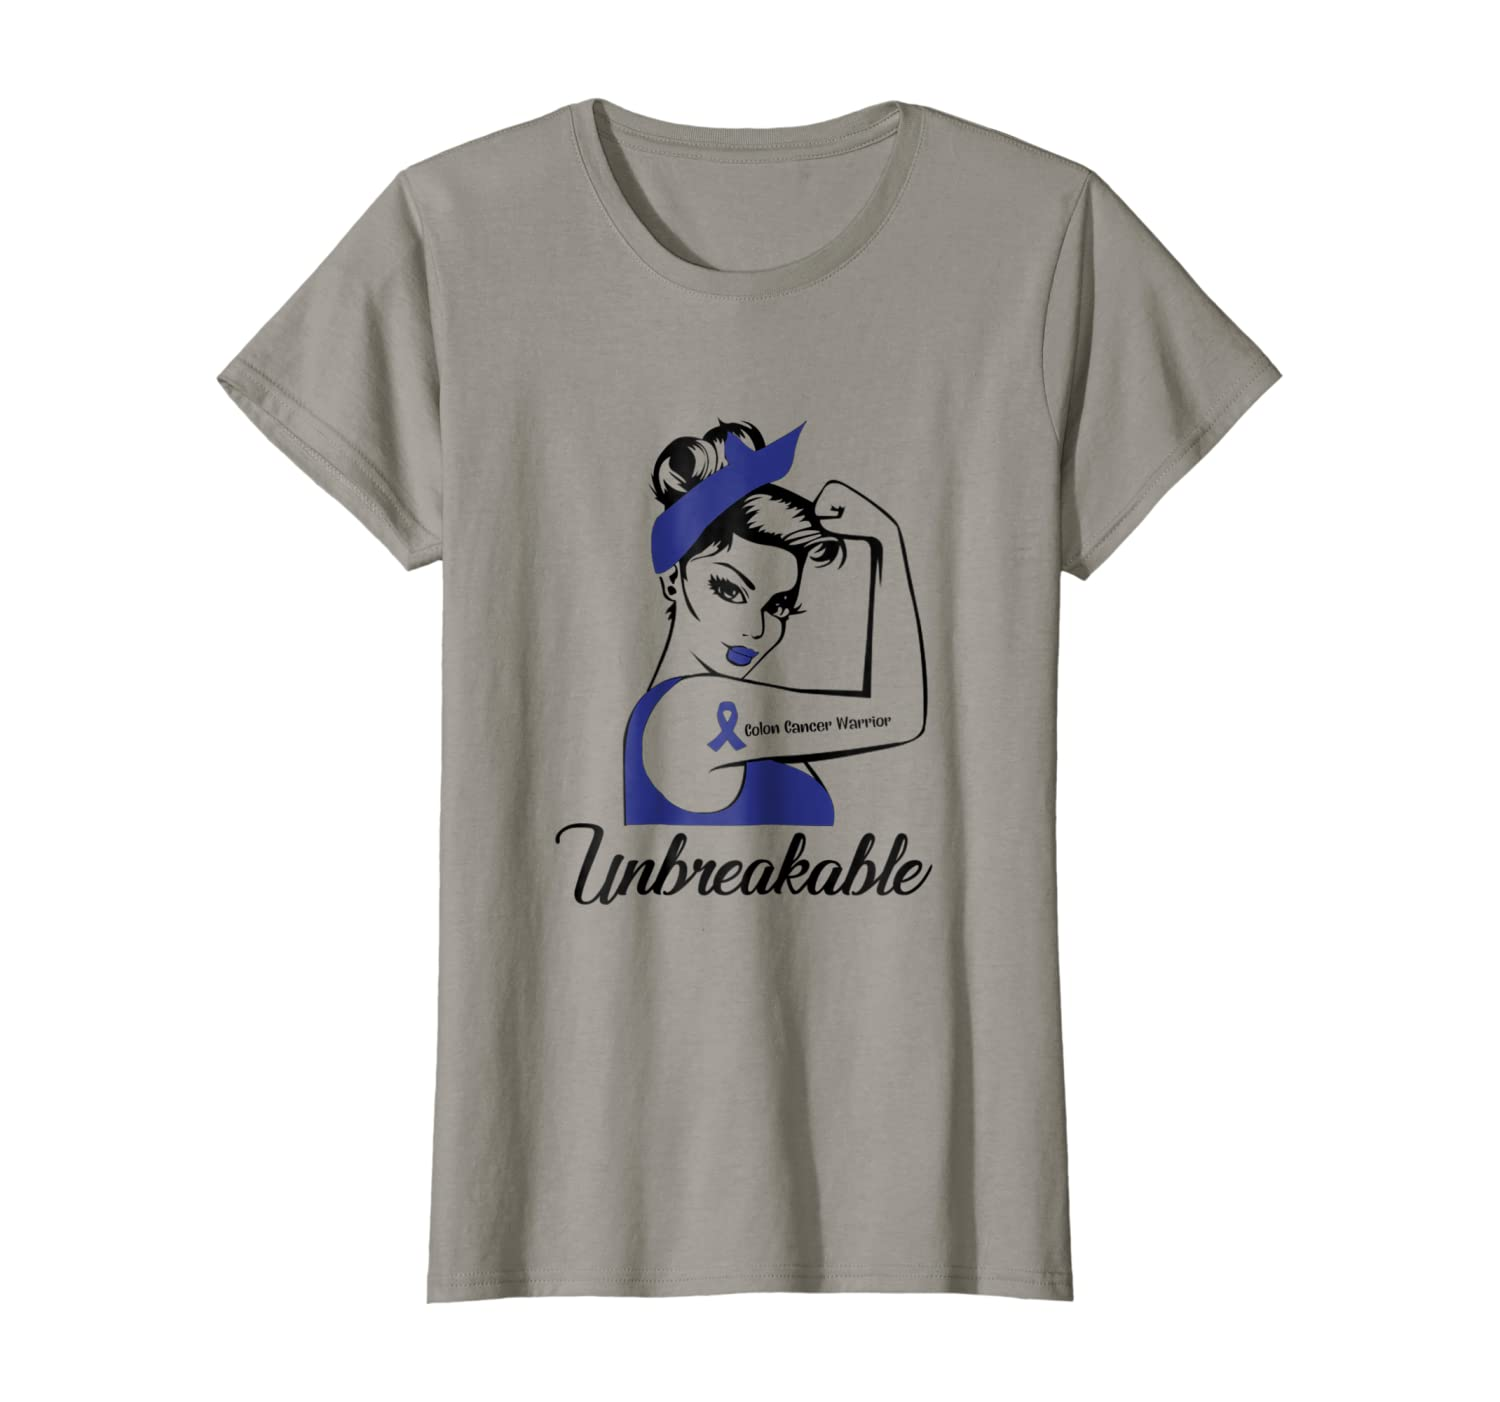 Amazon Com Strong Woman Colon Cancer Warrior Unbreakable T Shirt Clothing